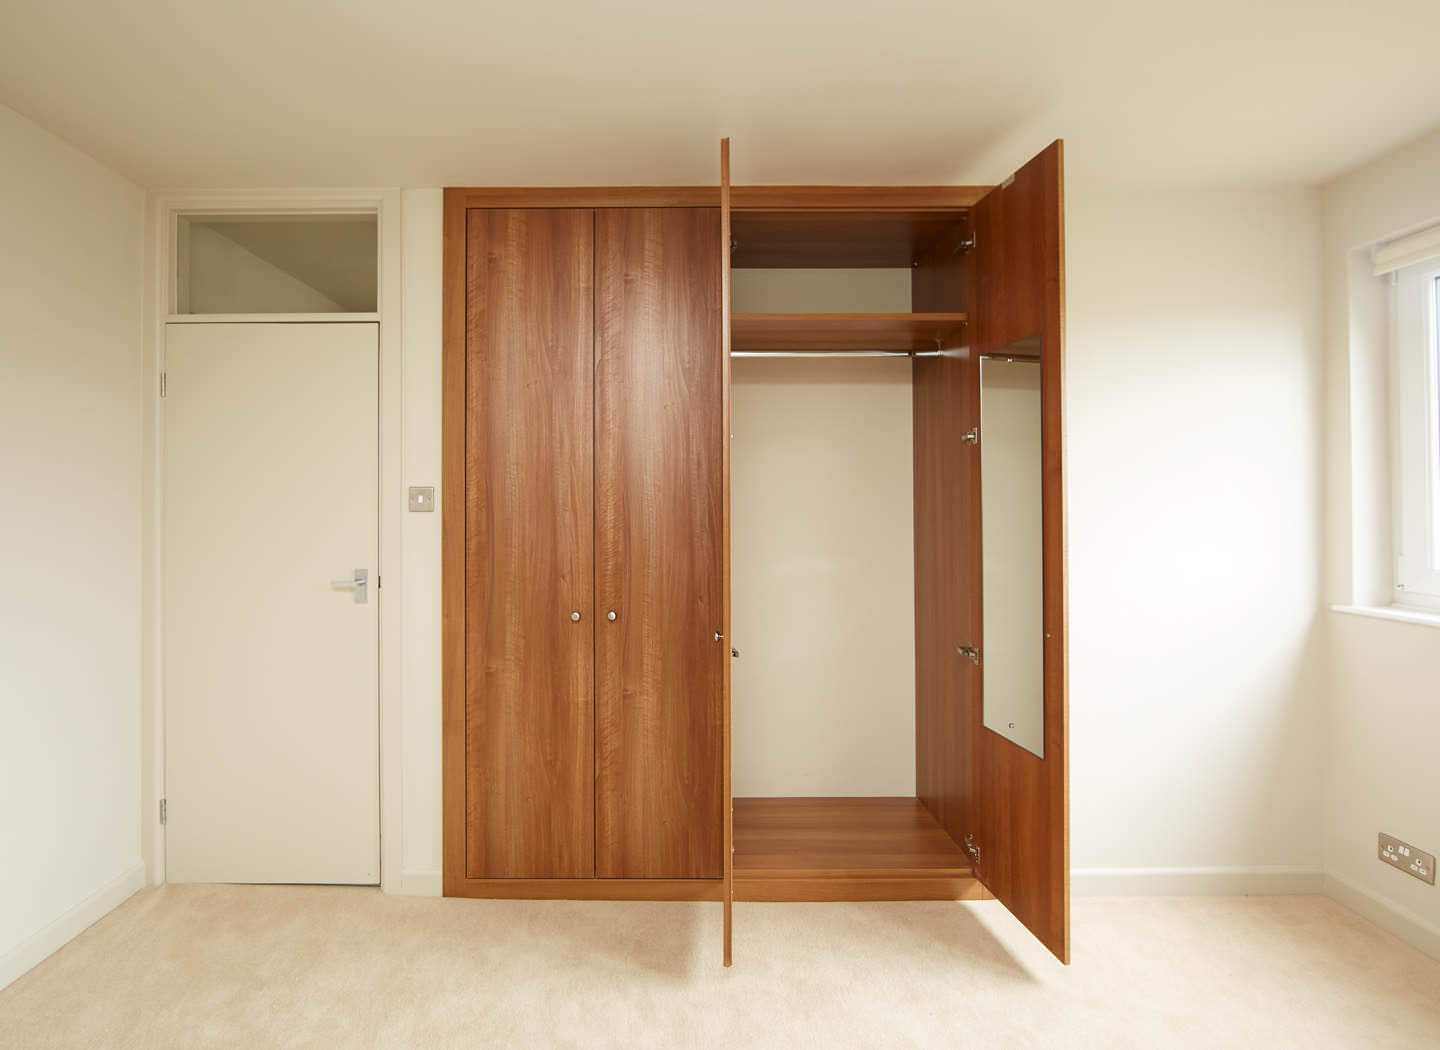 Case study showing open fitted wardrobes